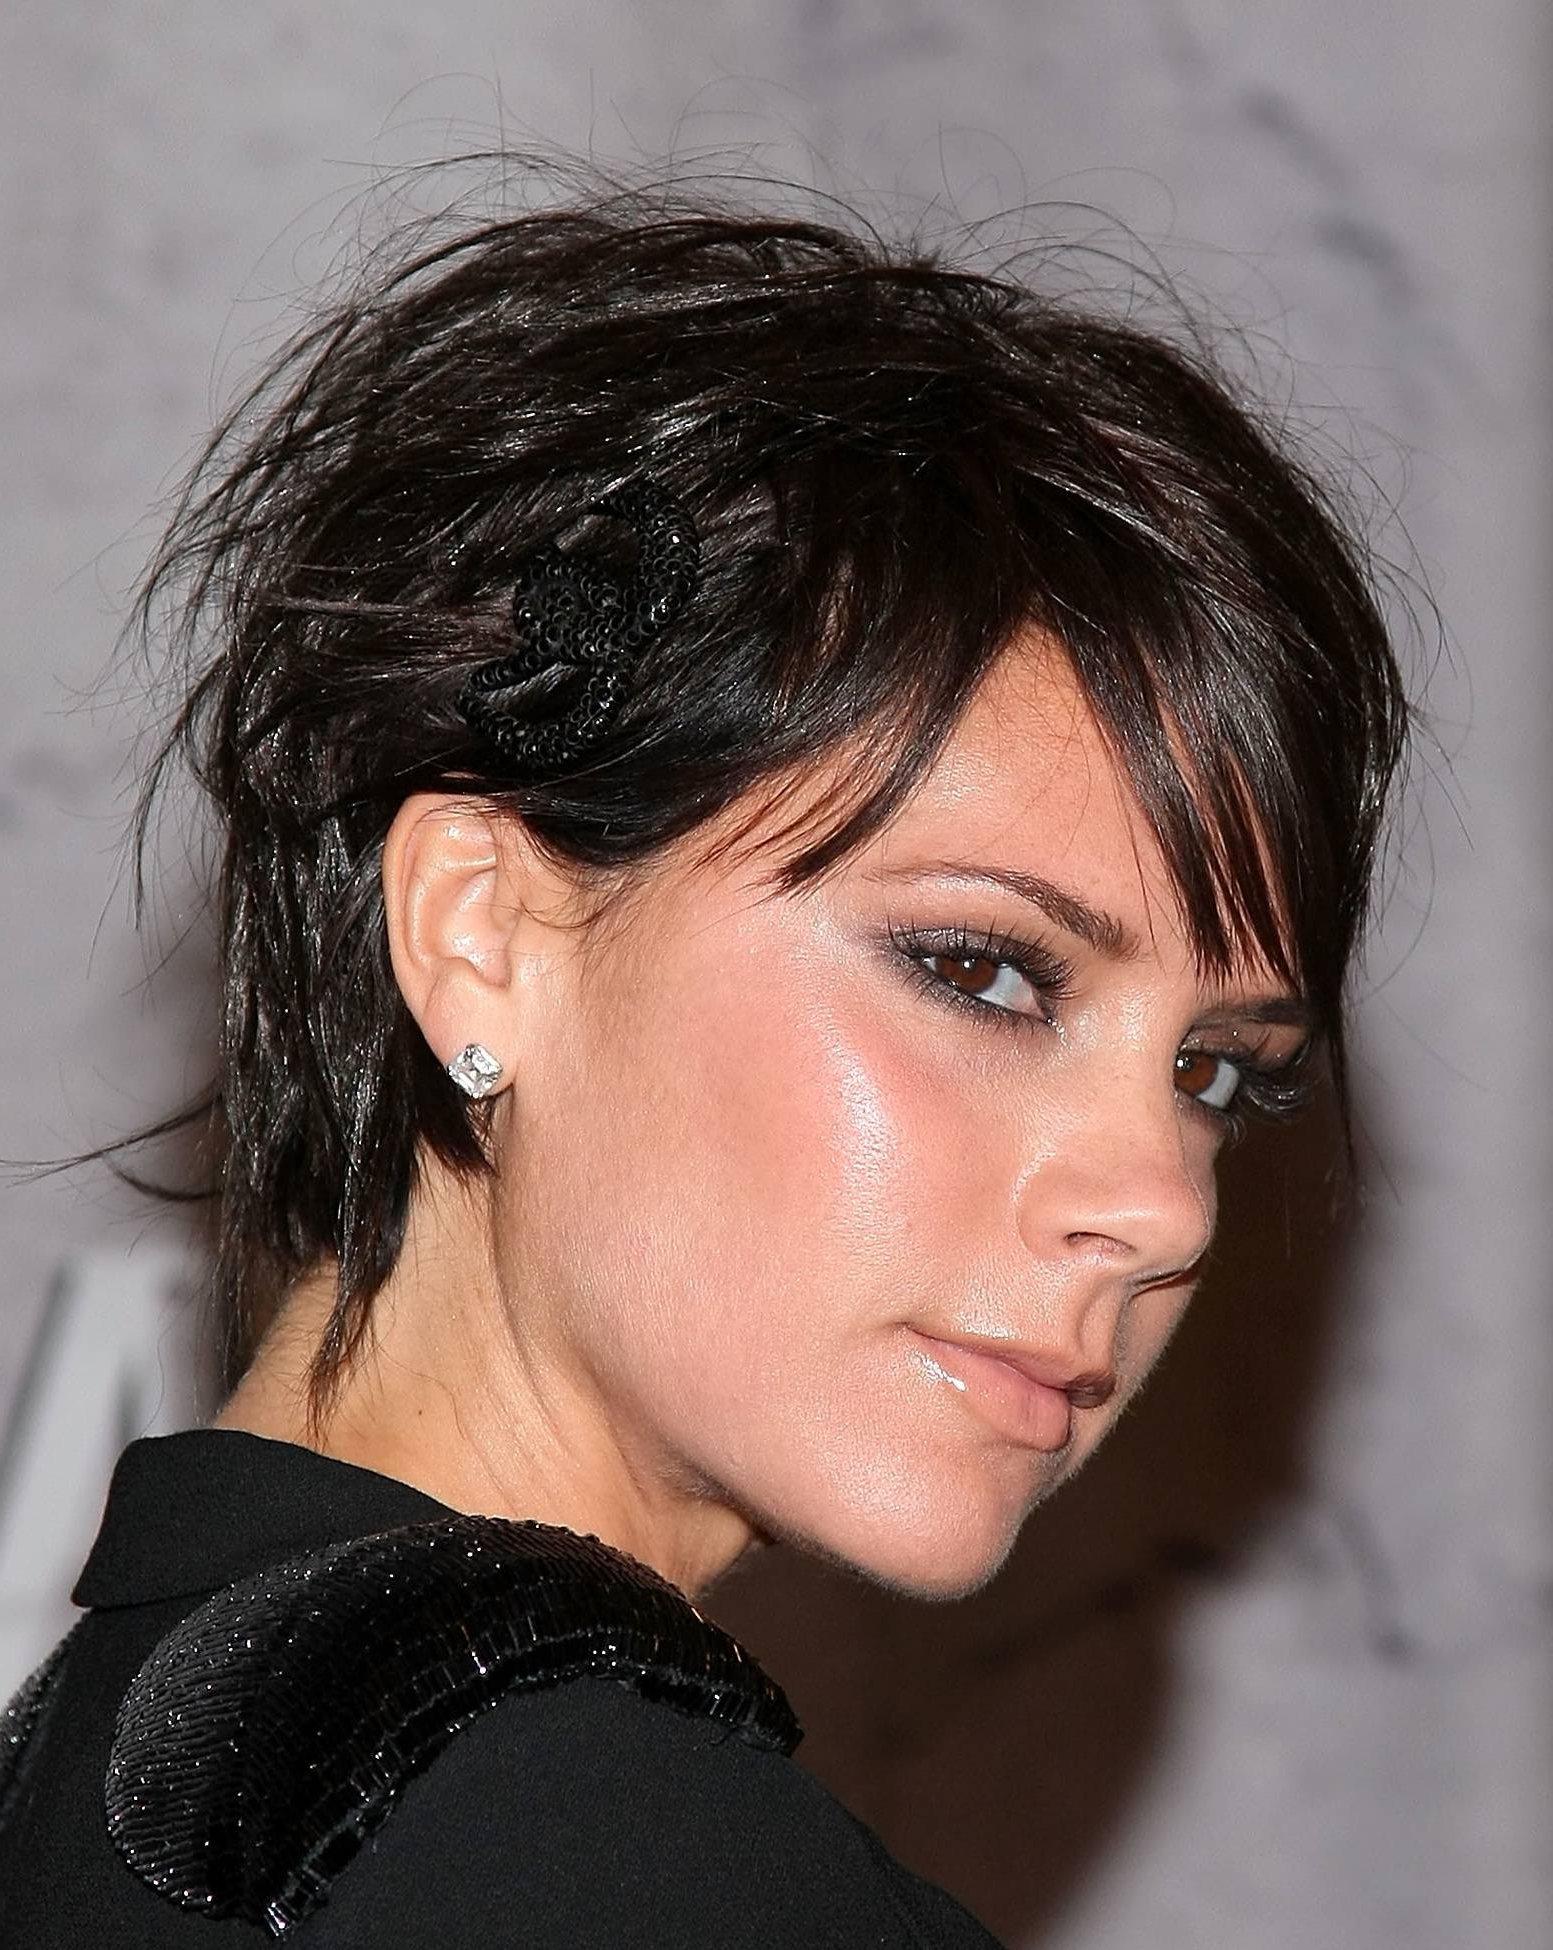 Amazing Victoria Beckham Hairstyles With Victoria Beckham Short Hairstyles (Gallery 18 of 25)